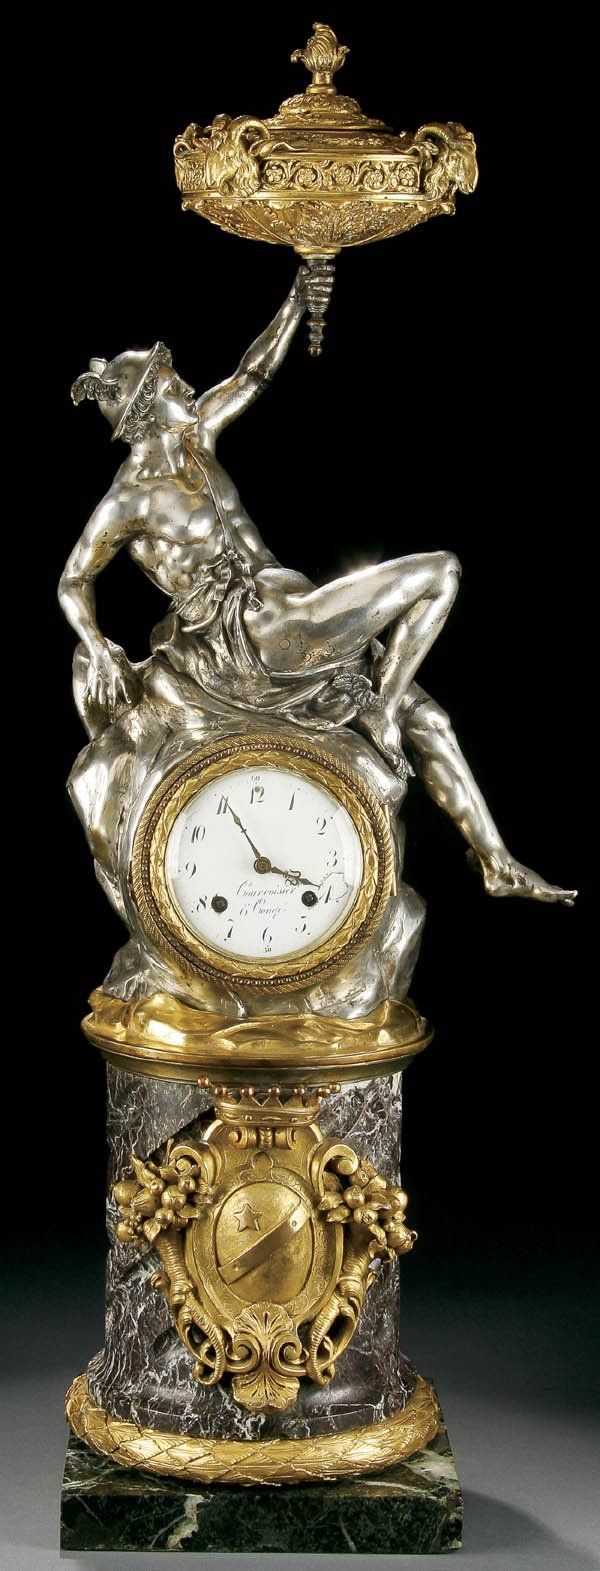 "French neoclassical figural clock, mid 19th century, ""Mercury with Torchere"", the silver plated figure of Mercury holding a gilt bronze lidded torchere with sculpted rams heads resting on a rockery peak containing a brass movement with enamelled dial."